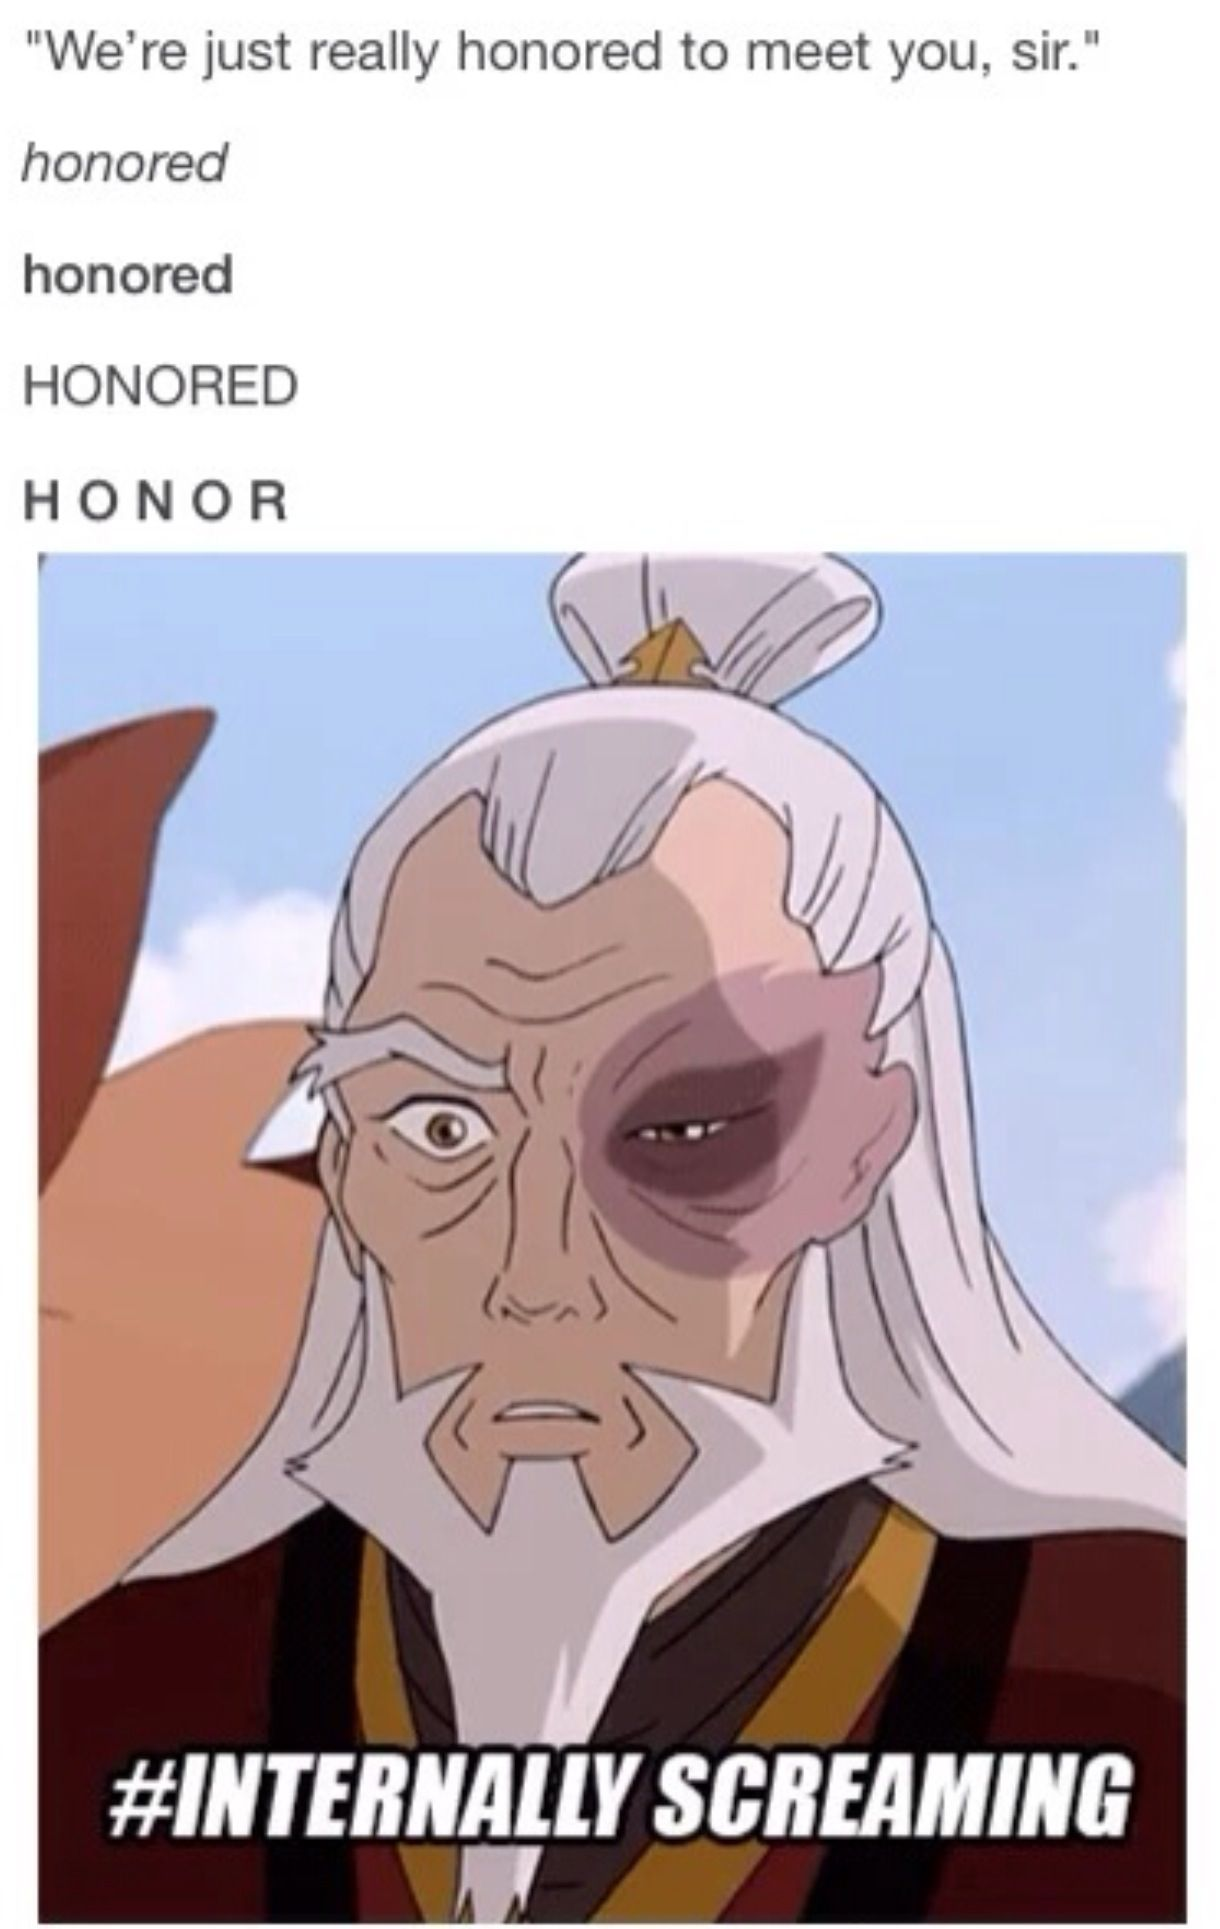 Old man fucking twinkle Even as an old man, Zuko is still perturbed by the concept of honor.